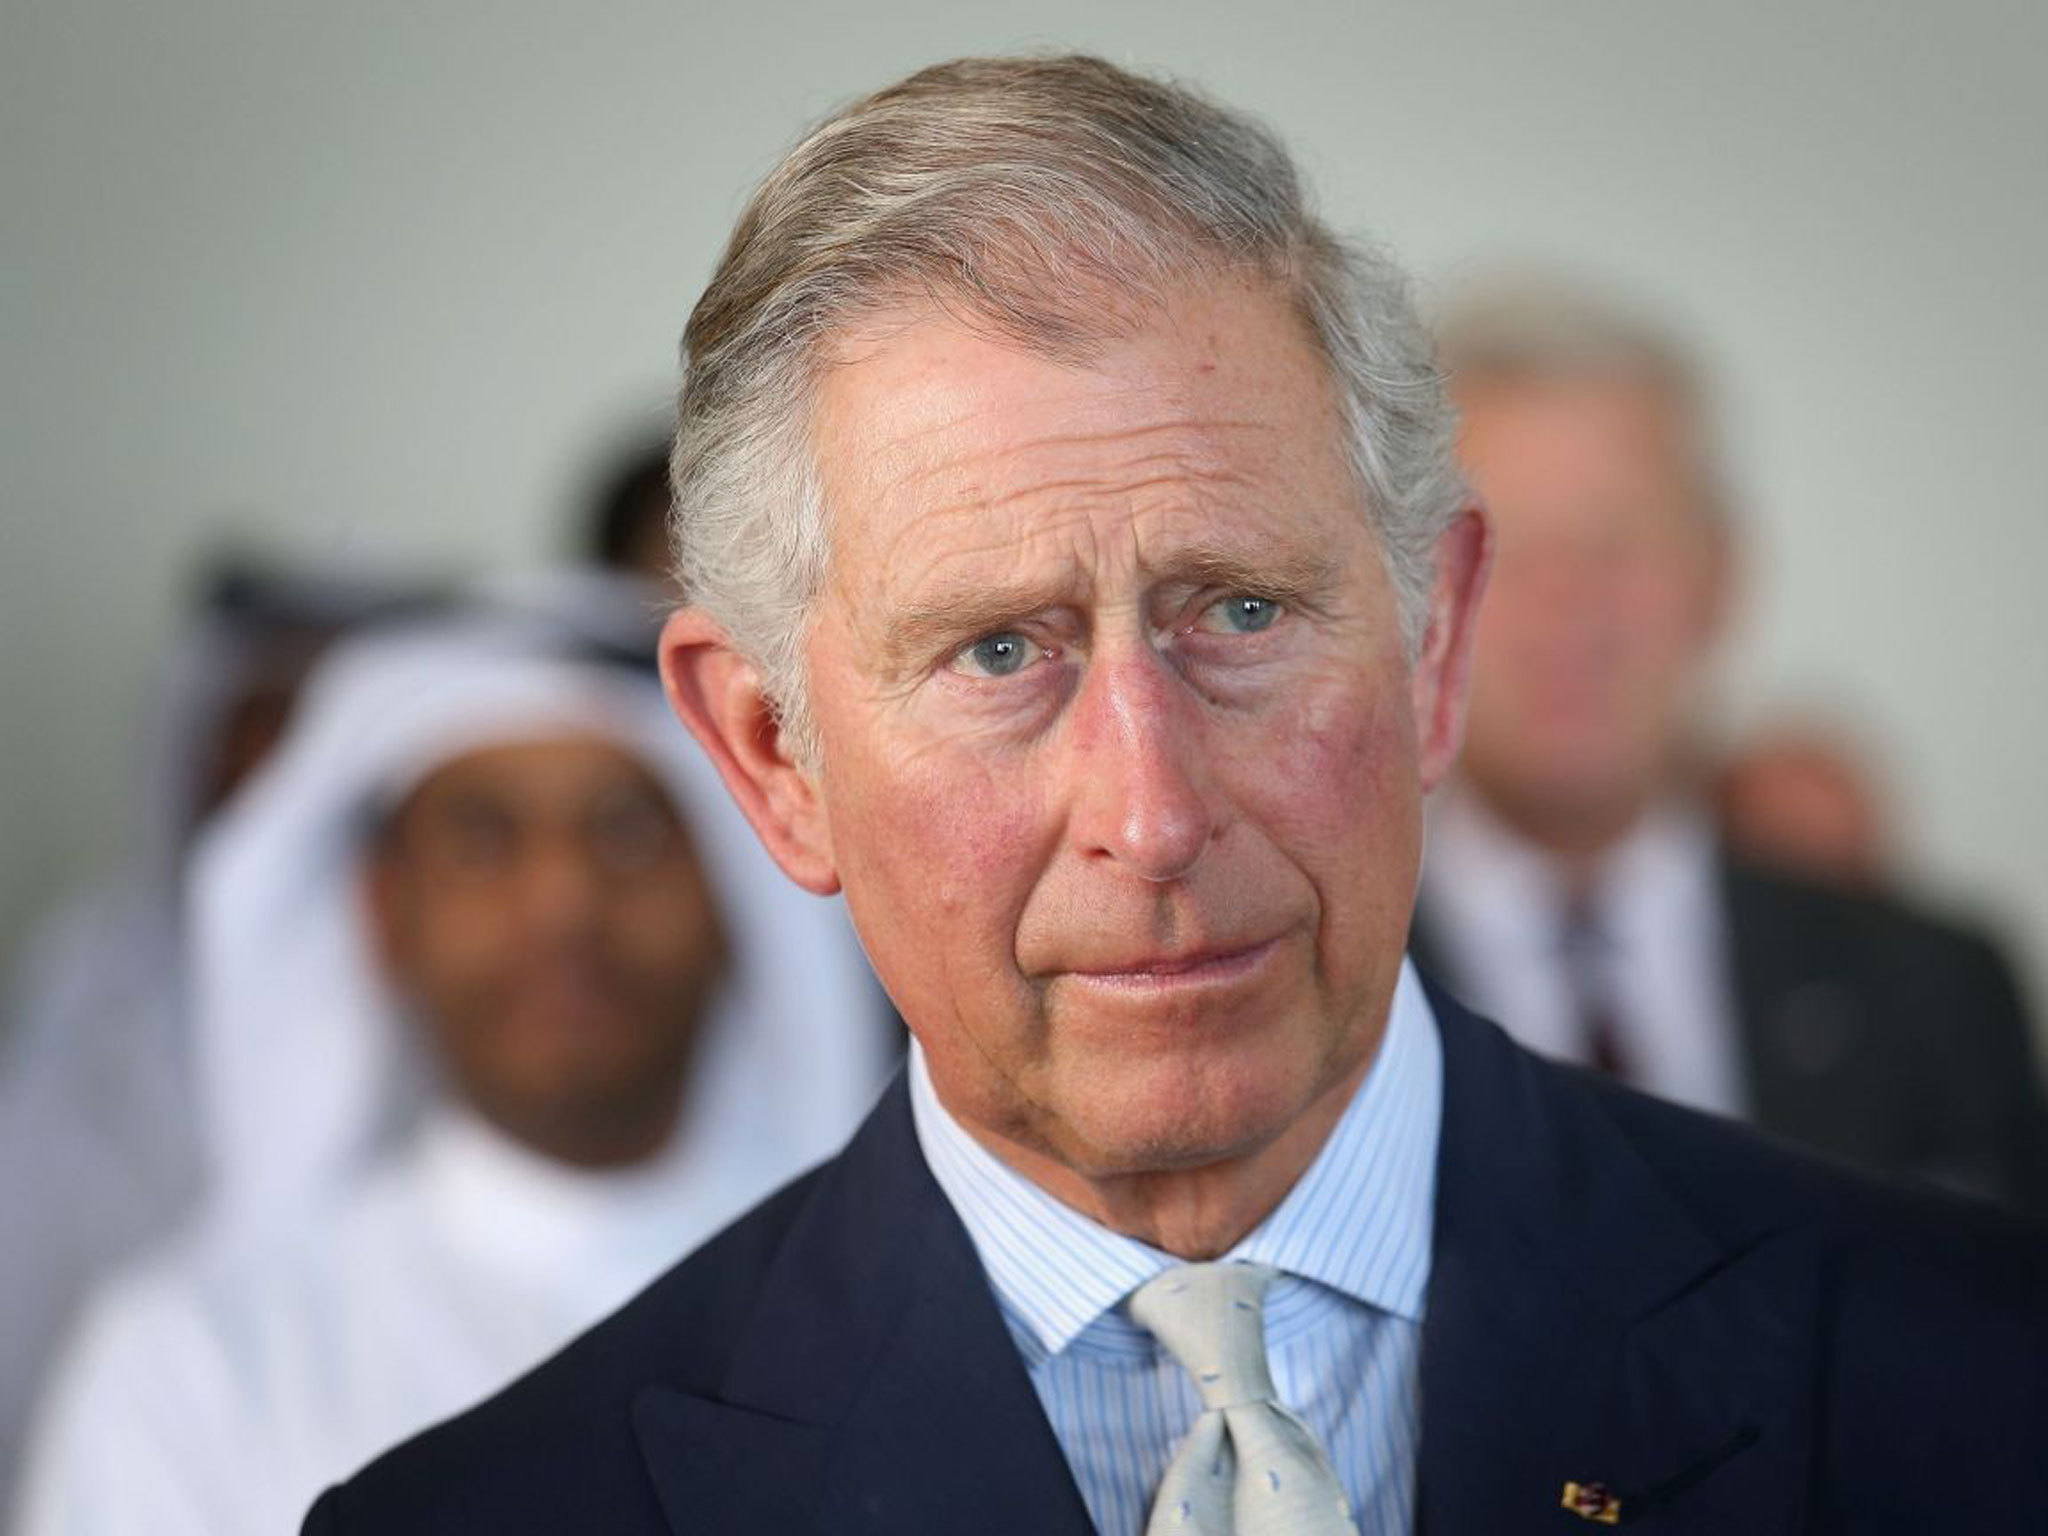 Prince Charles Wallpaper For Computer